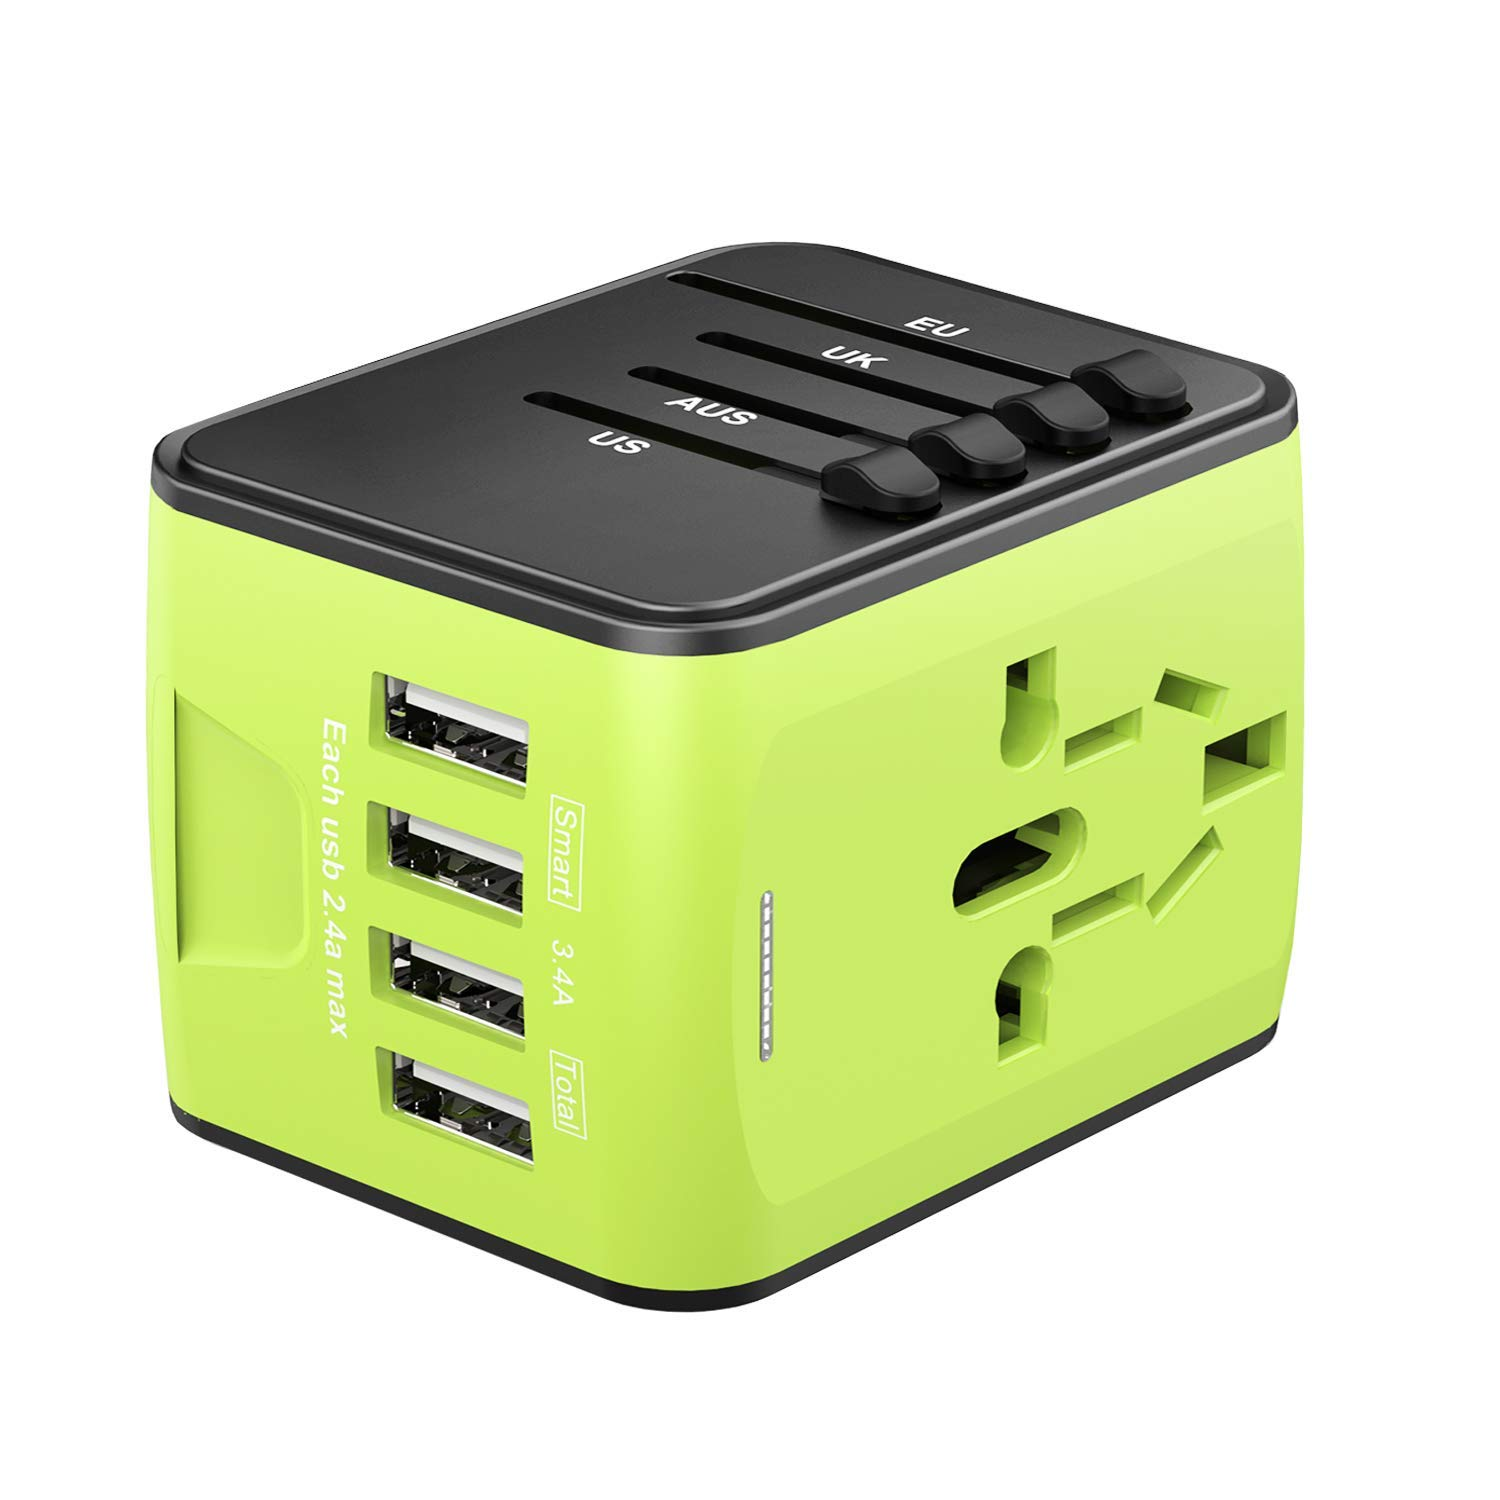 Fast 2.4A 4 USB Worldwide International Power Adapter Mini Portable Travel Charger with 4 Charging Ports for US UK EU AUS 160 Countries Universal Travel Adapter